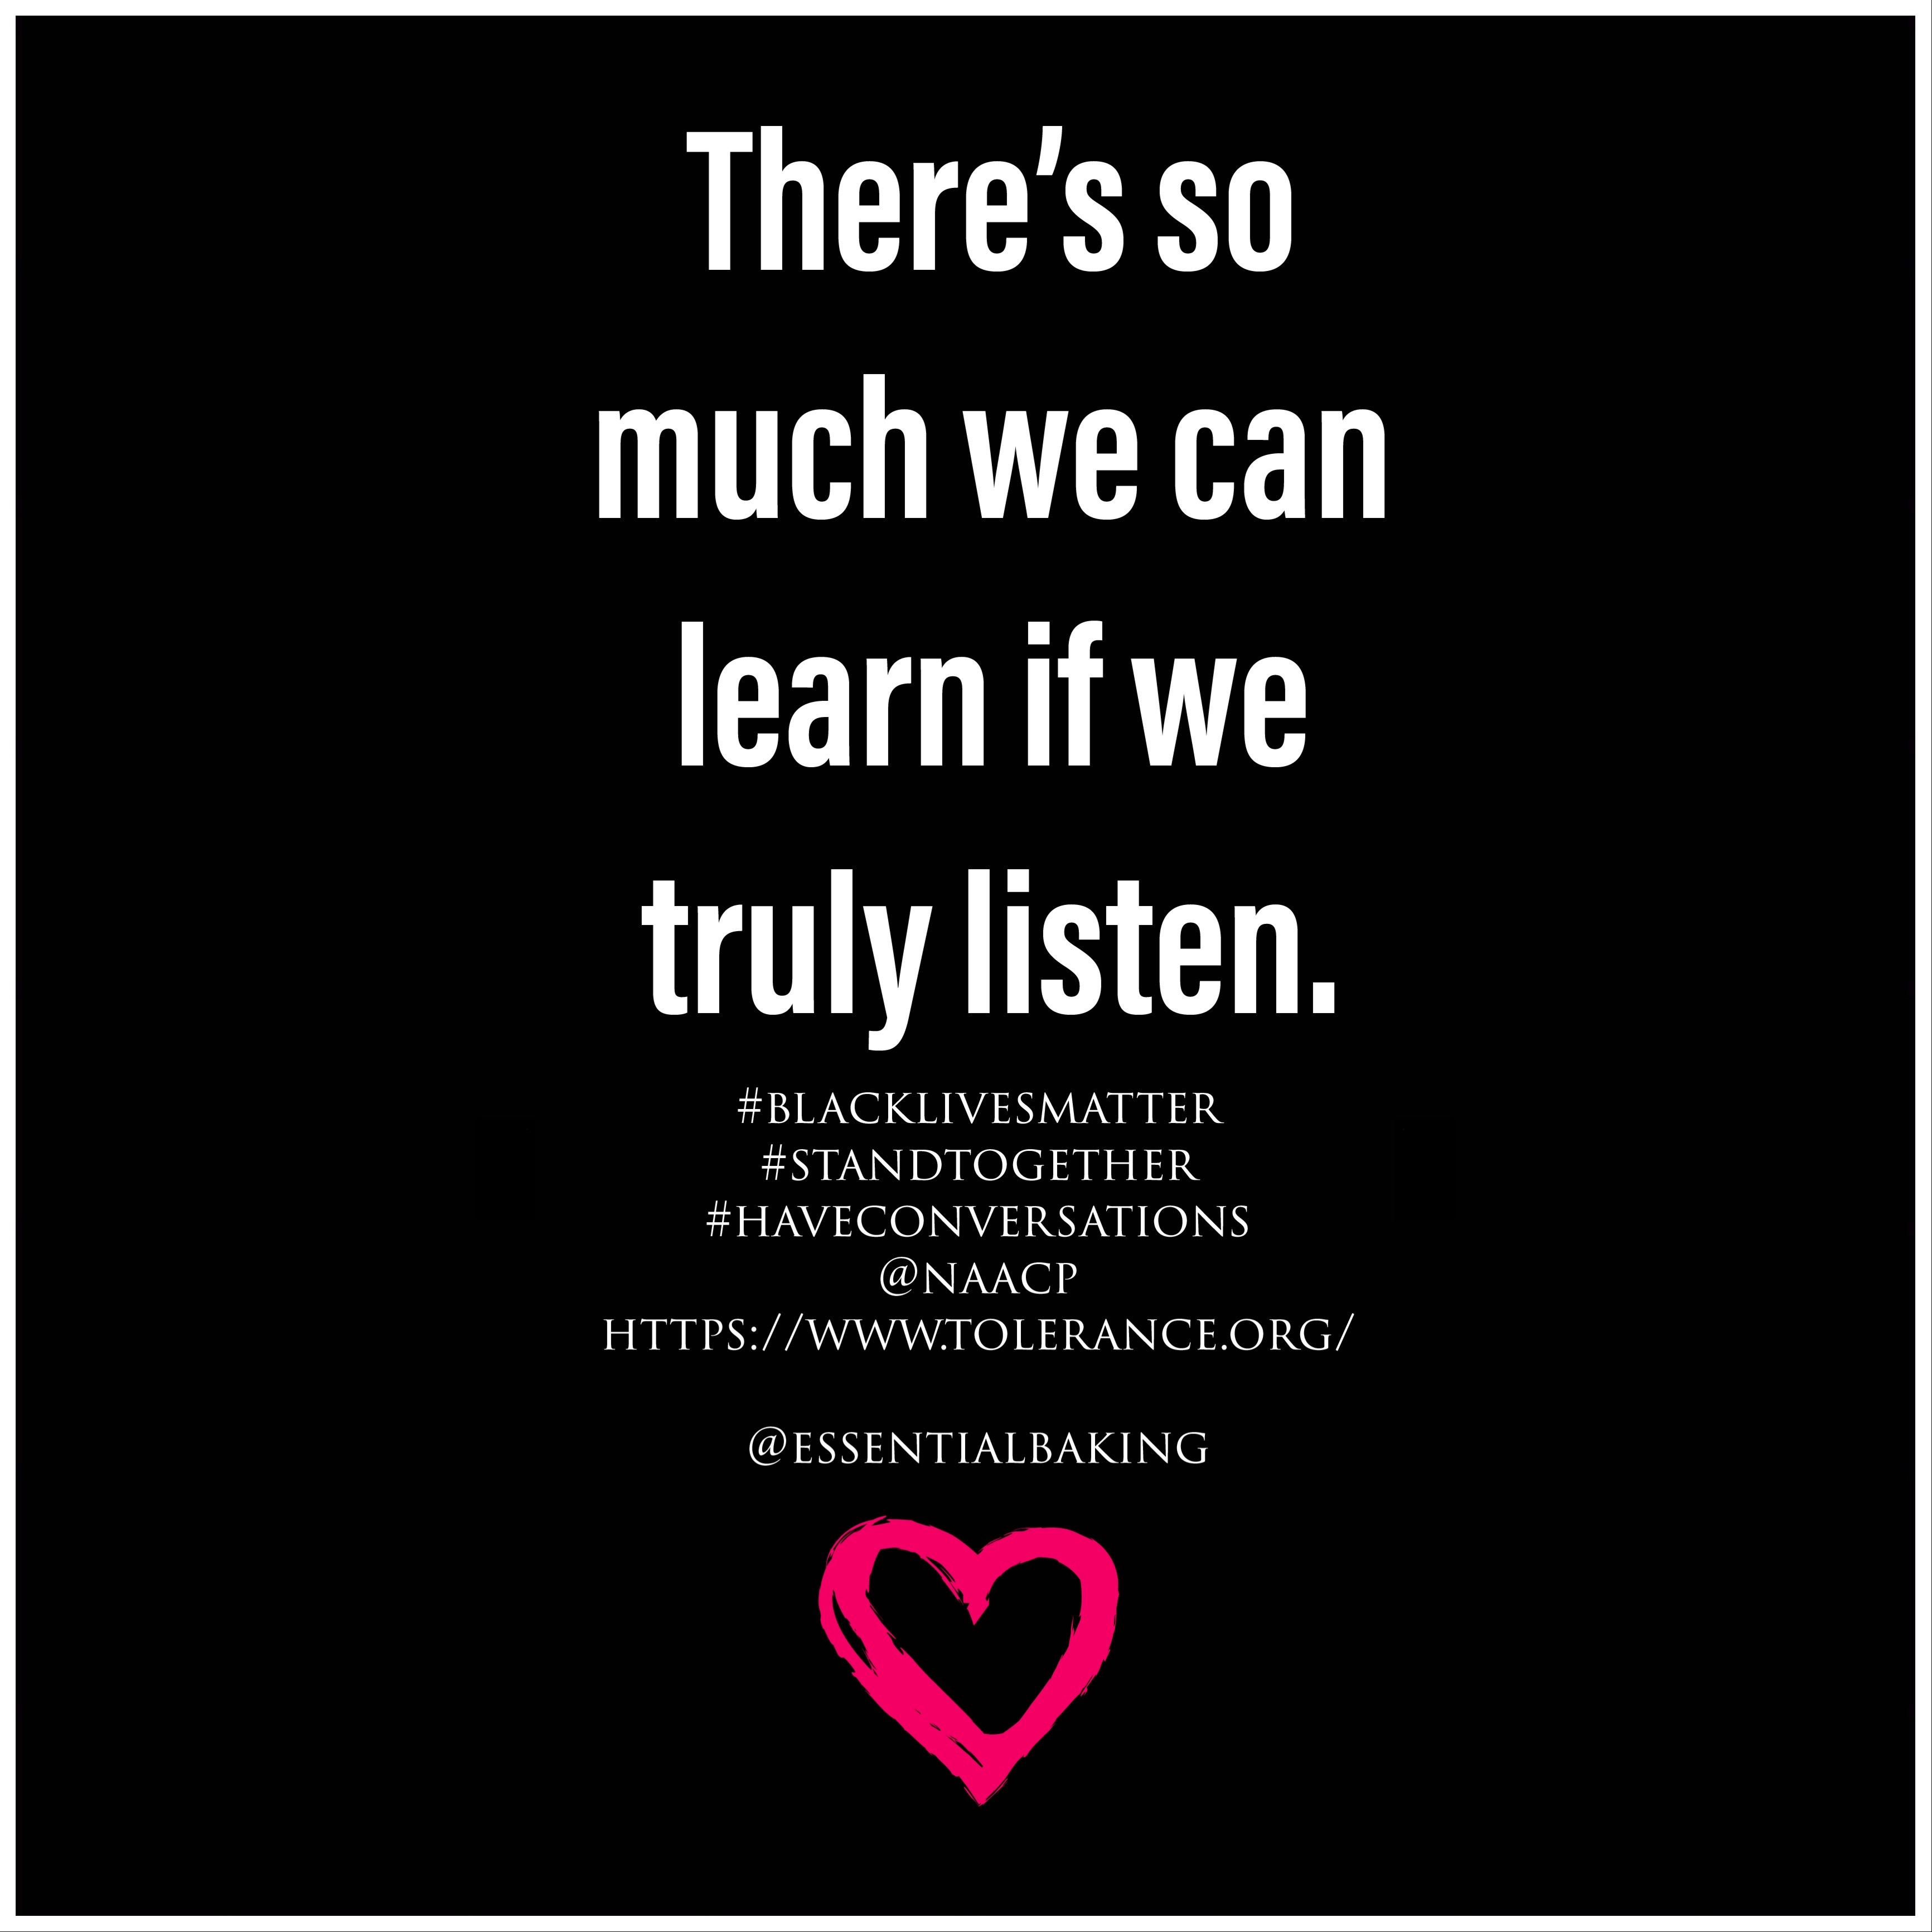 There's so much we can learn if we truly listen.